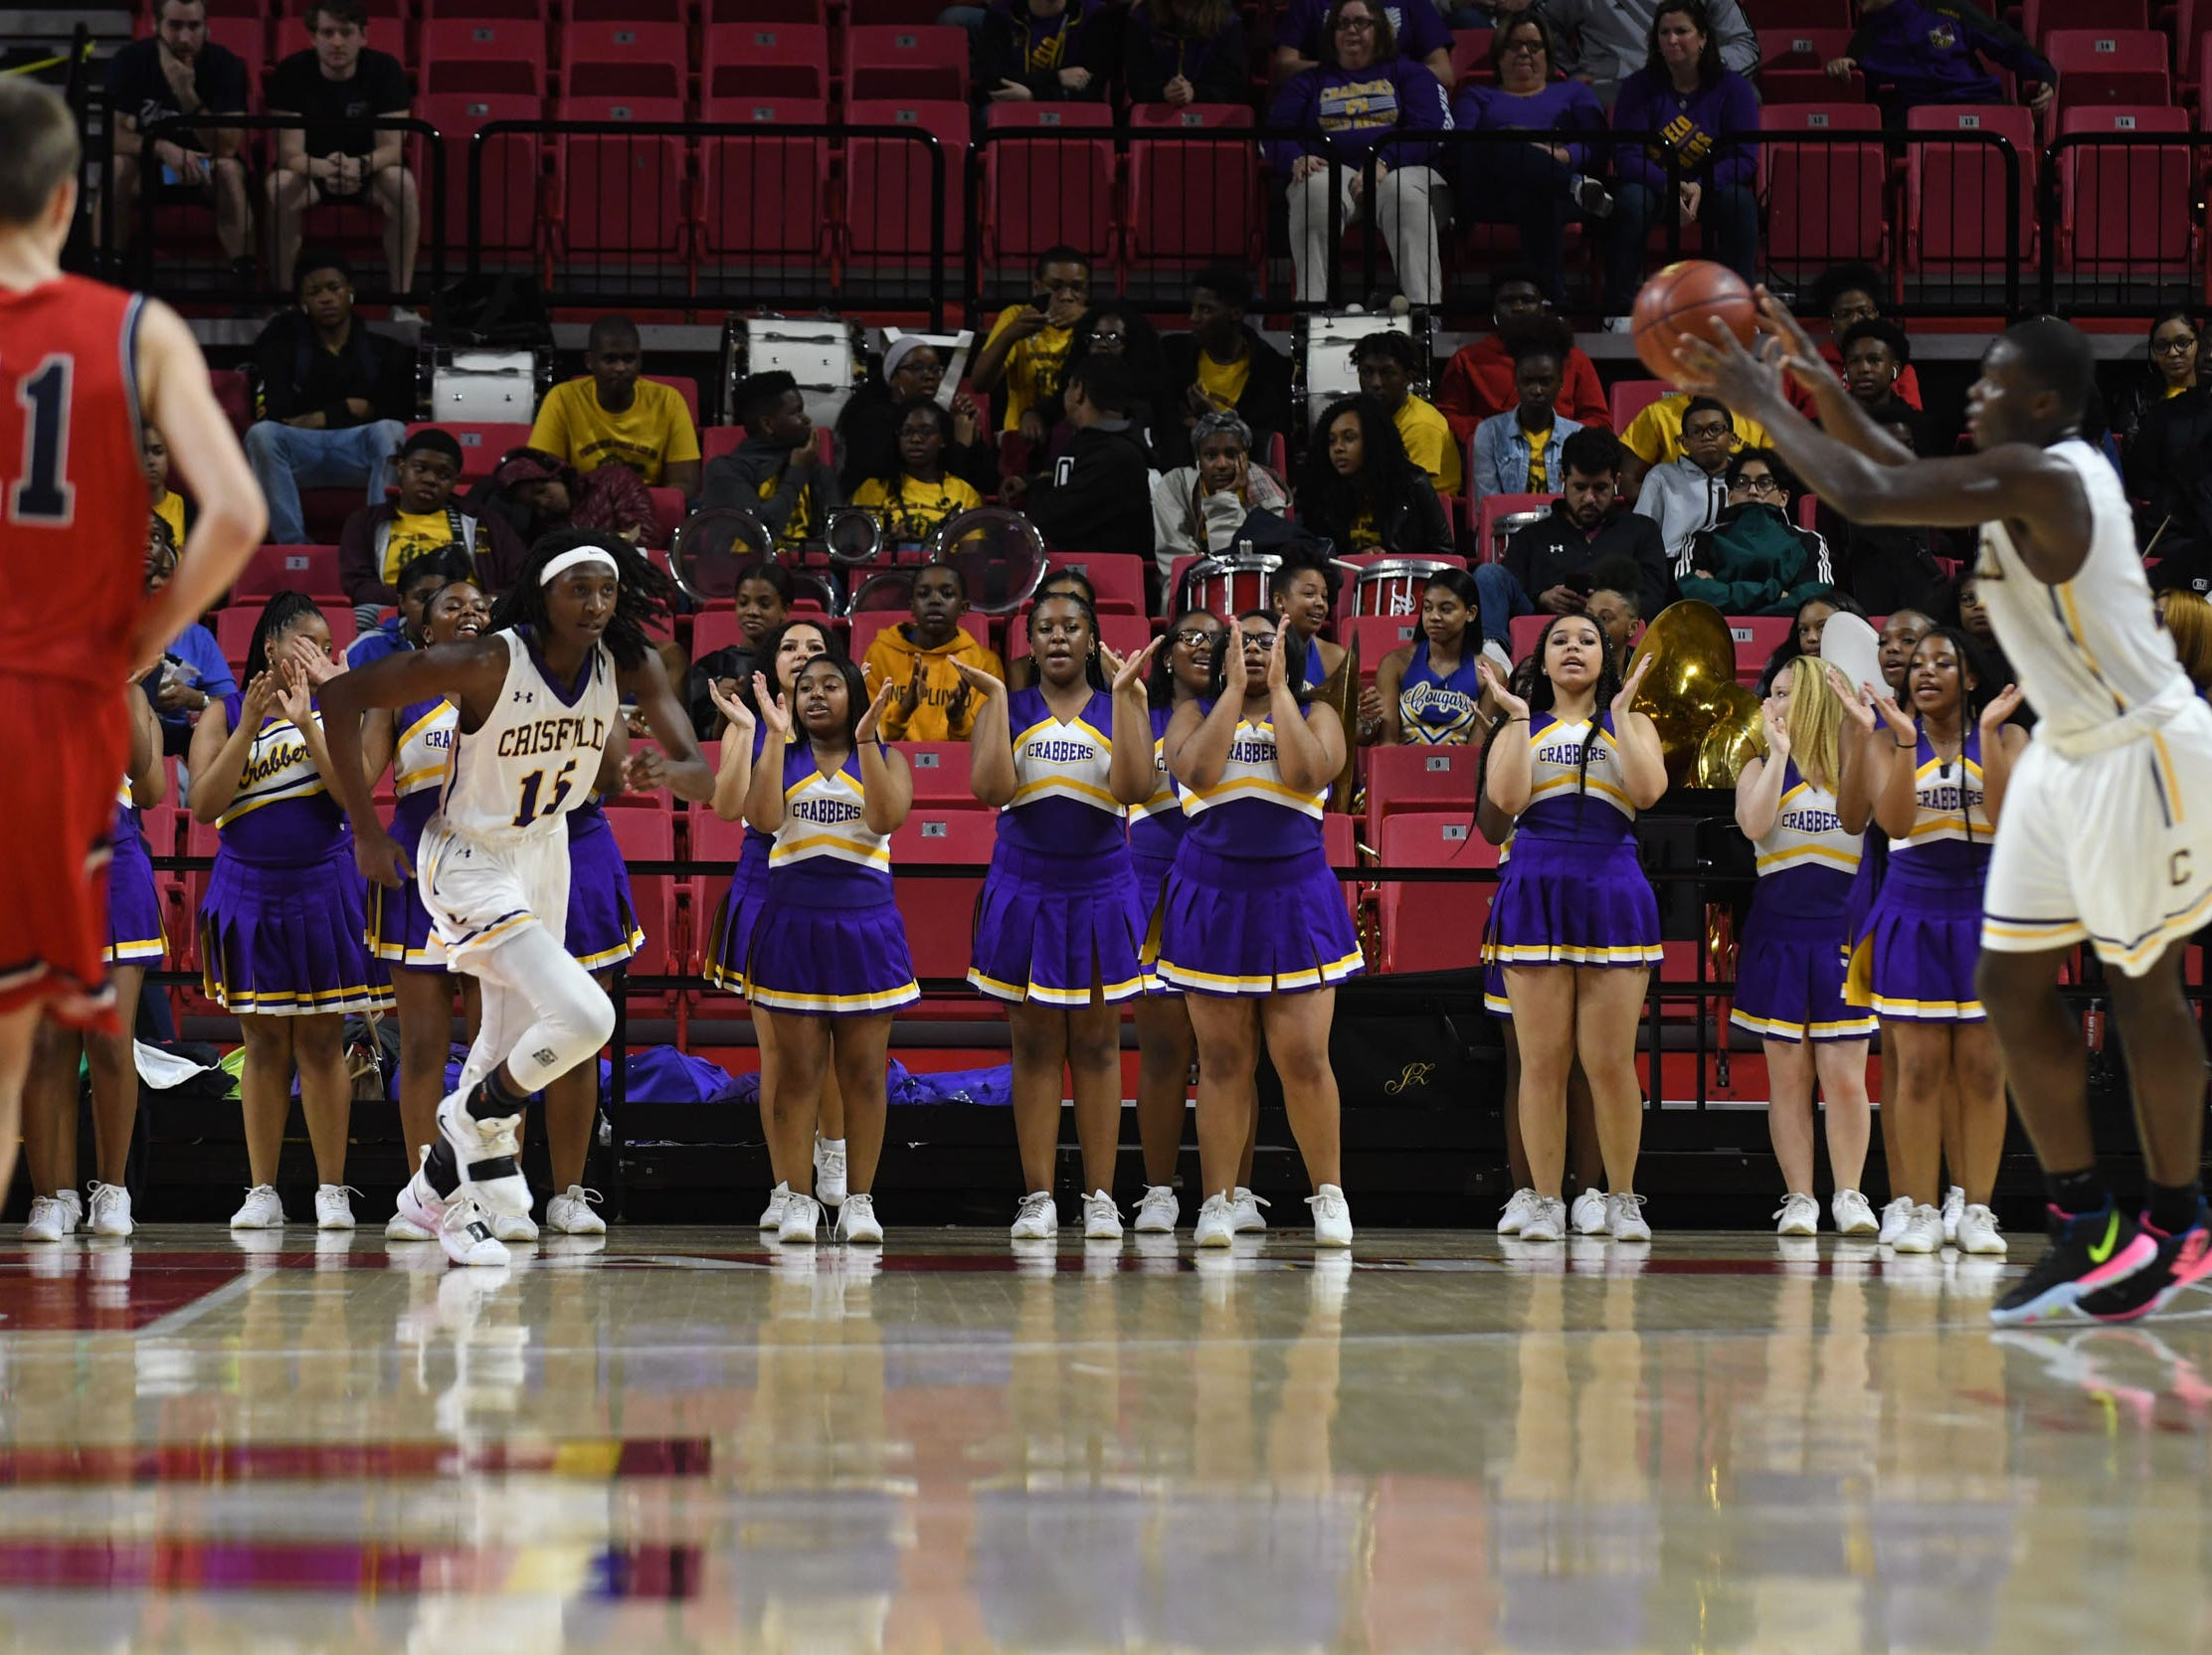 Crisfield's Cheerleaders pep up the team against Southern-Garrett during the MPSSAA State Championships at the Xfinity Center in College Park, Md. on Friday, March 15, 2019.